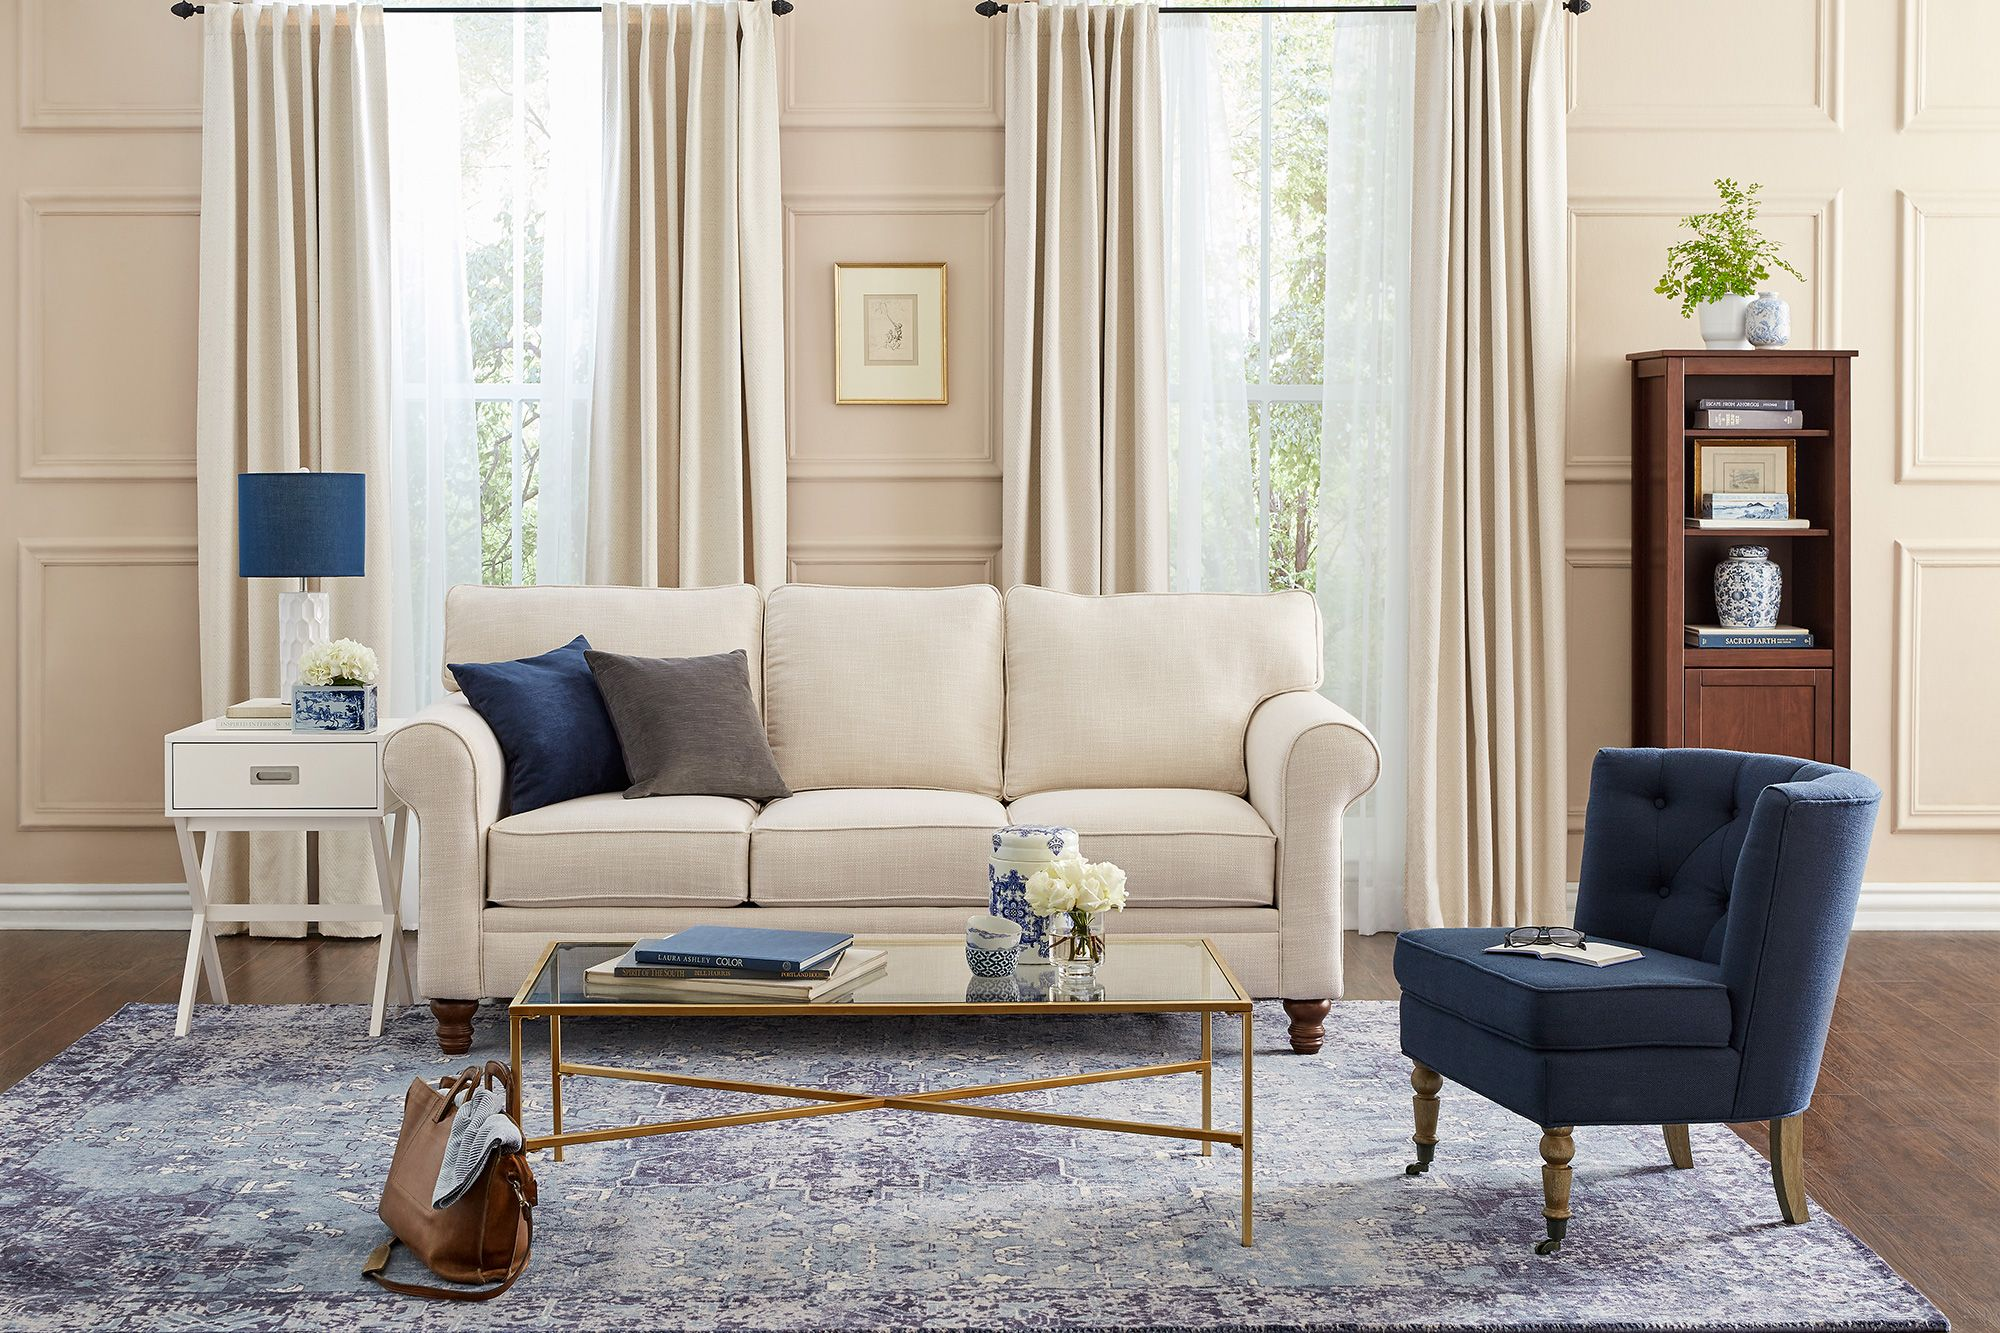 Amazon Launches Its Own Home Furnishings Collection Take